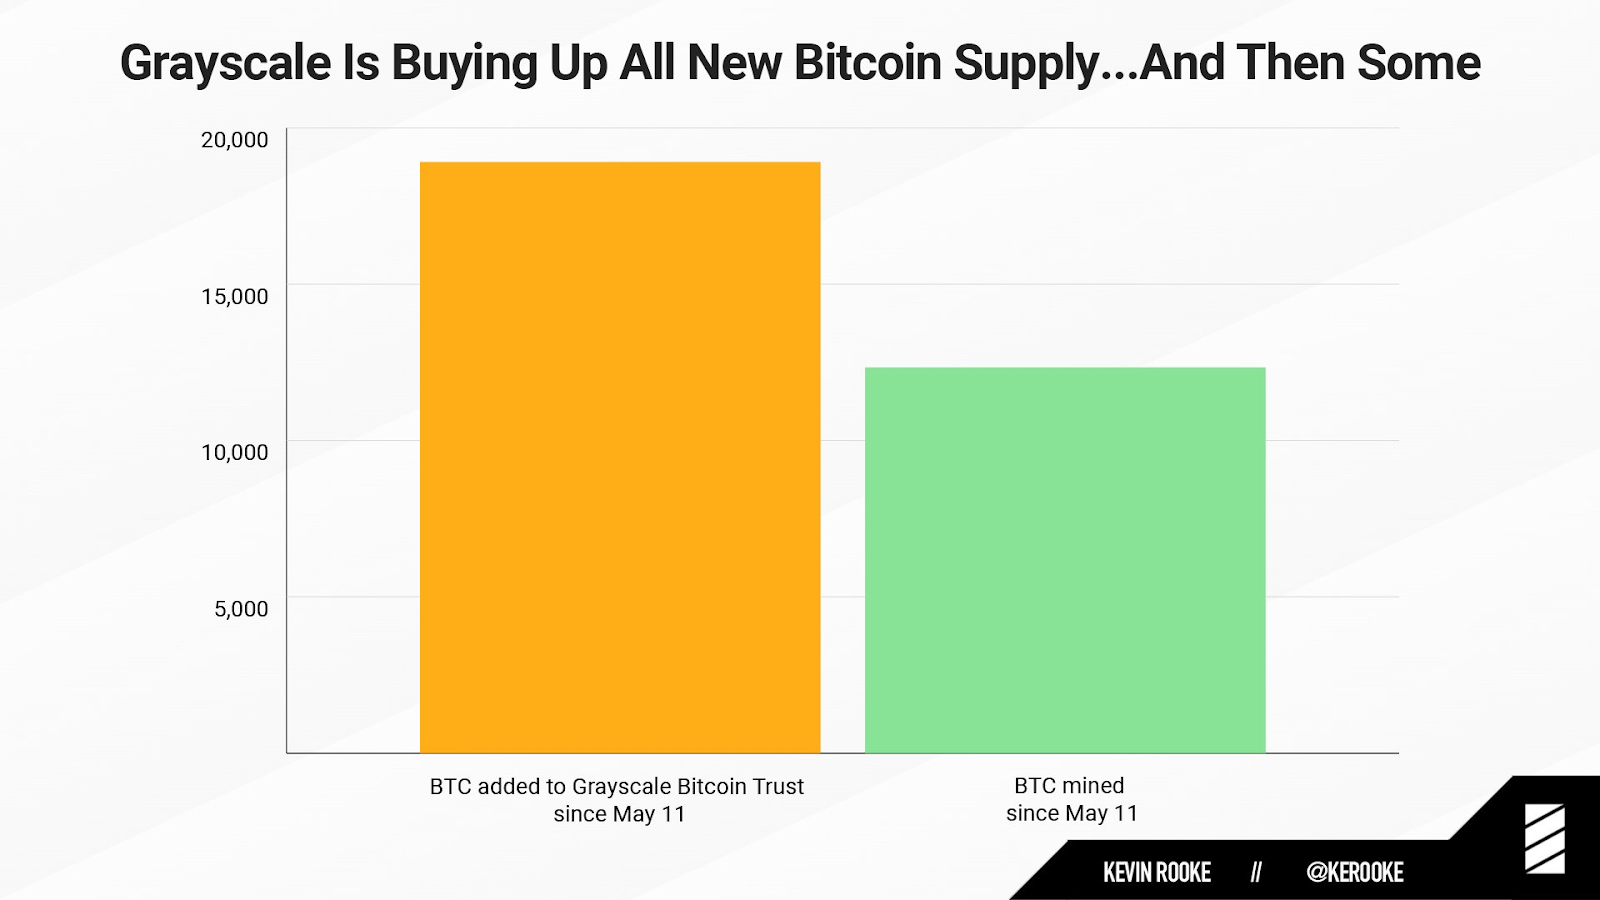 Grayscale Is Now Buying 1.5 Times the Amount of Bitcoin Being Mined